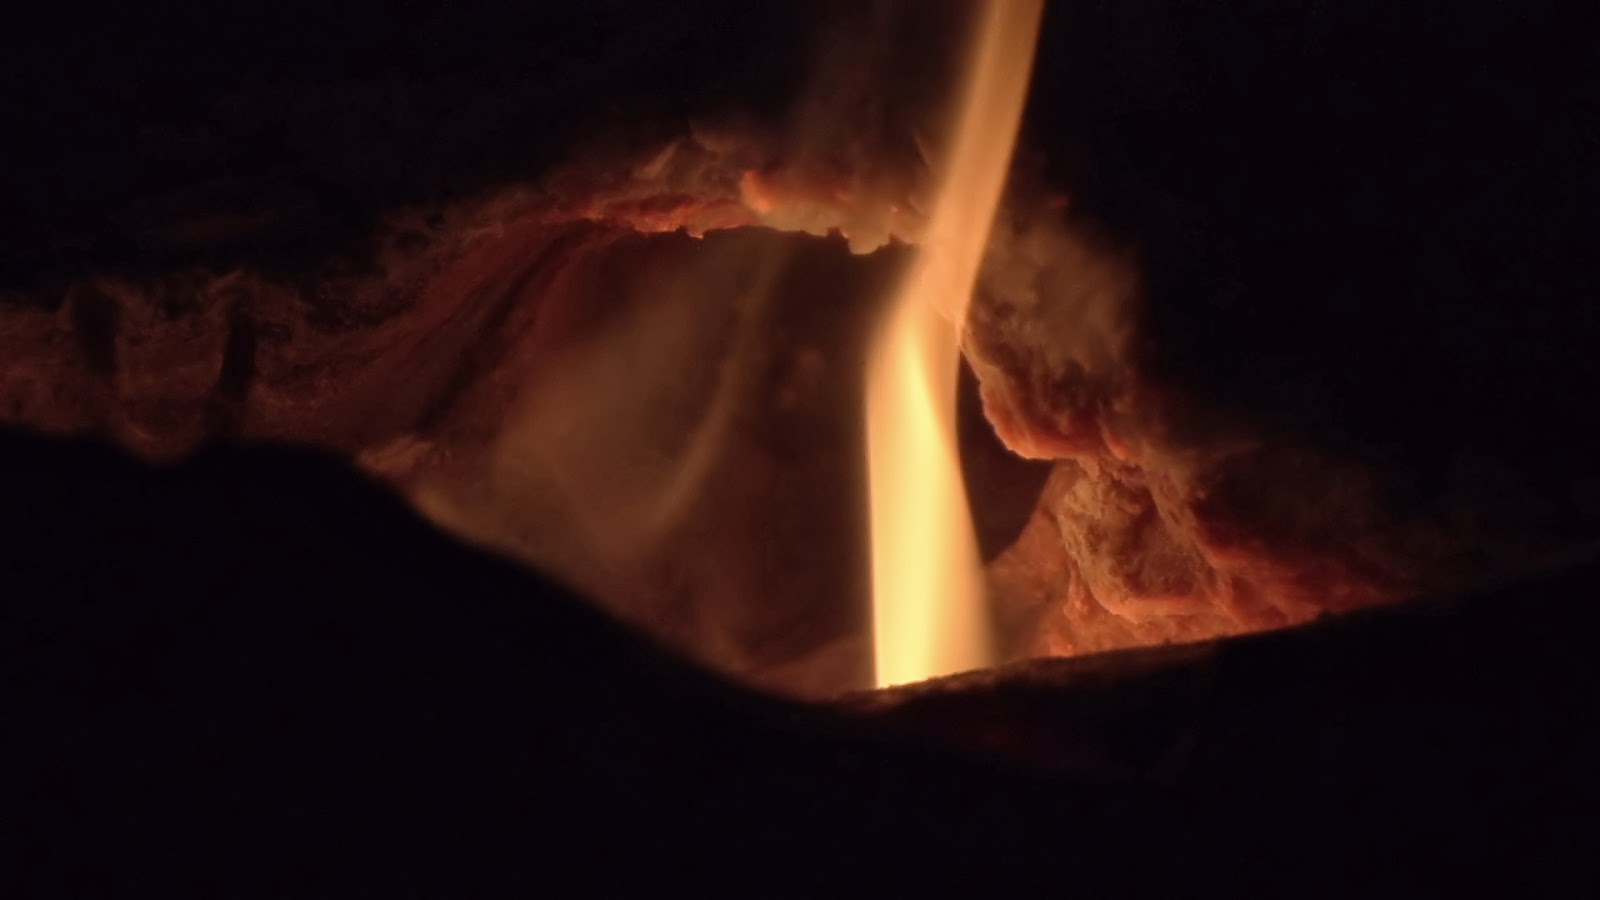 Fireplace Close Up – Alt Angle